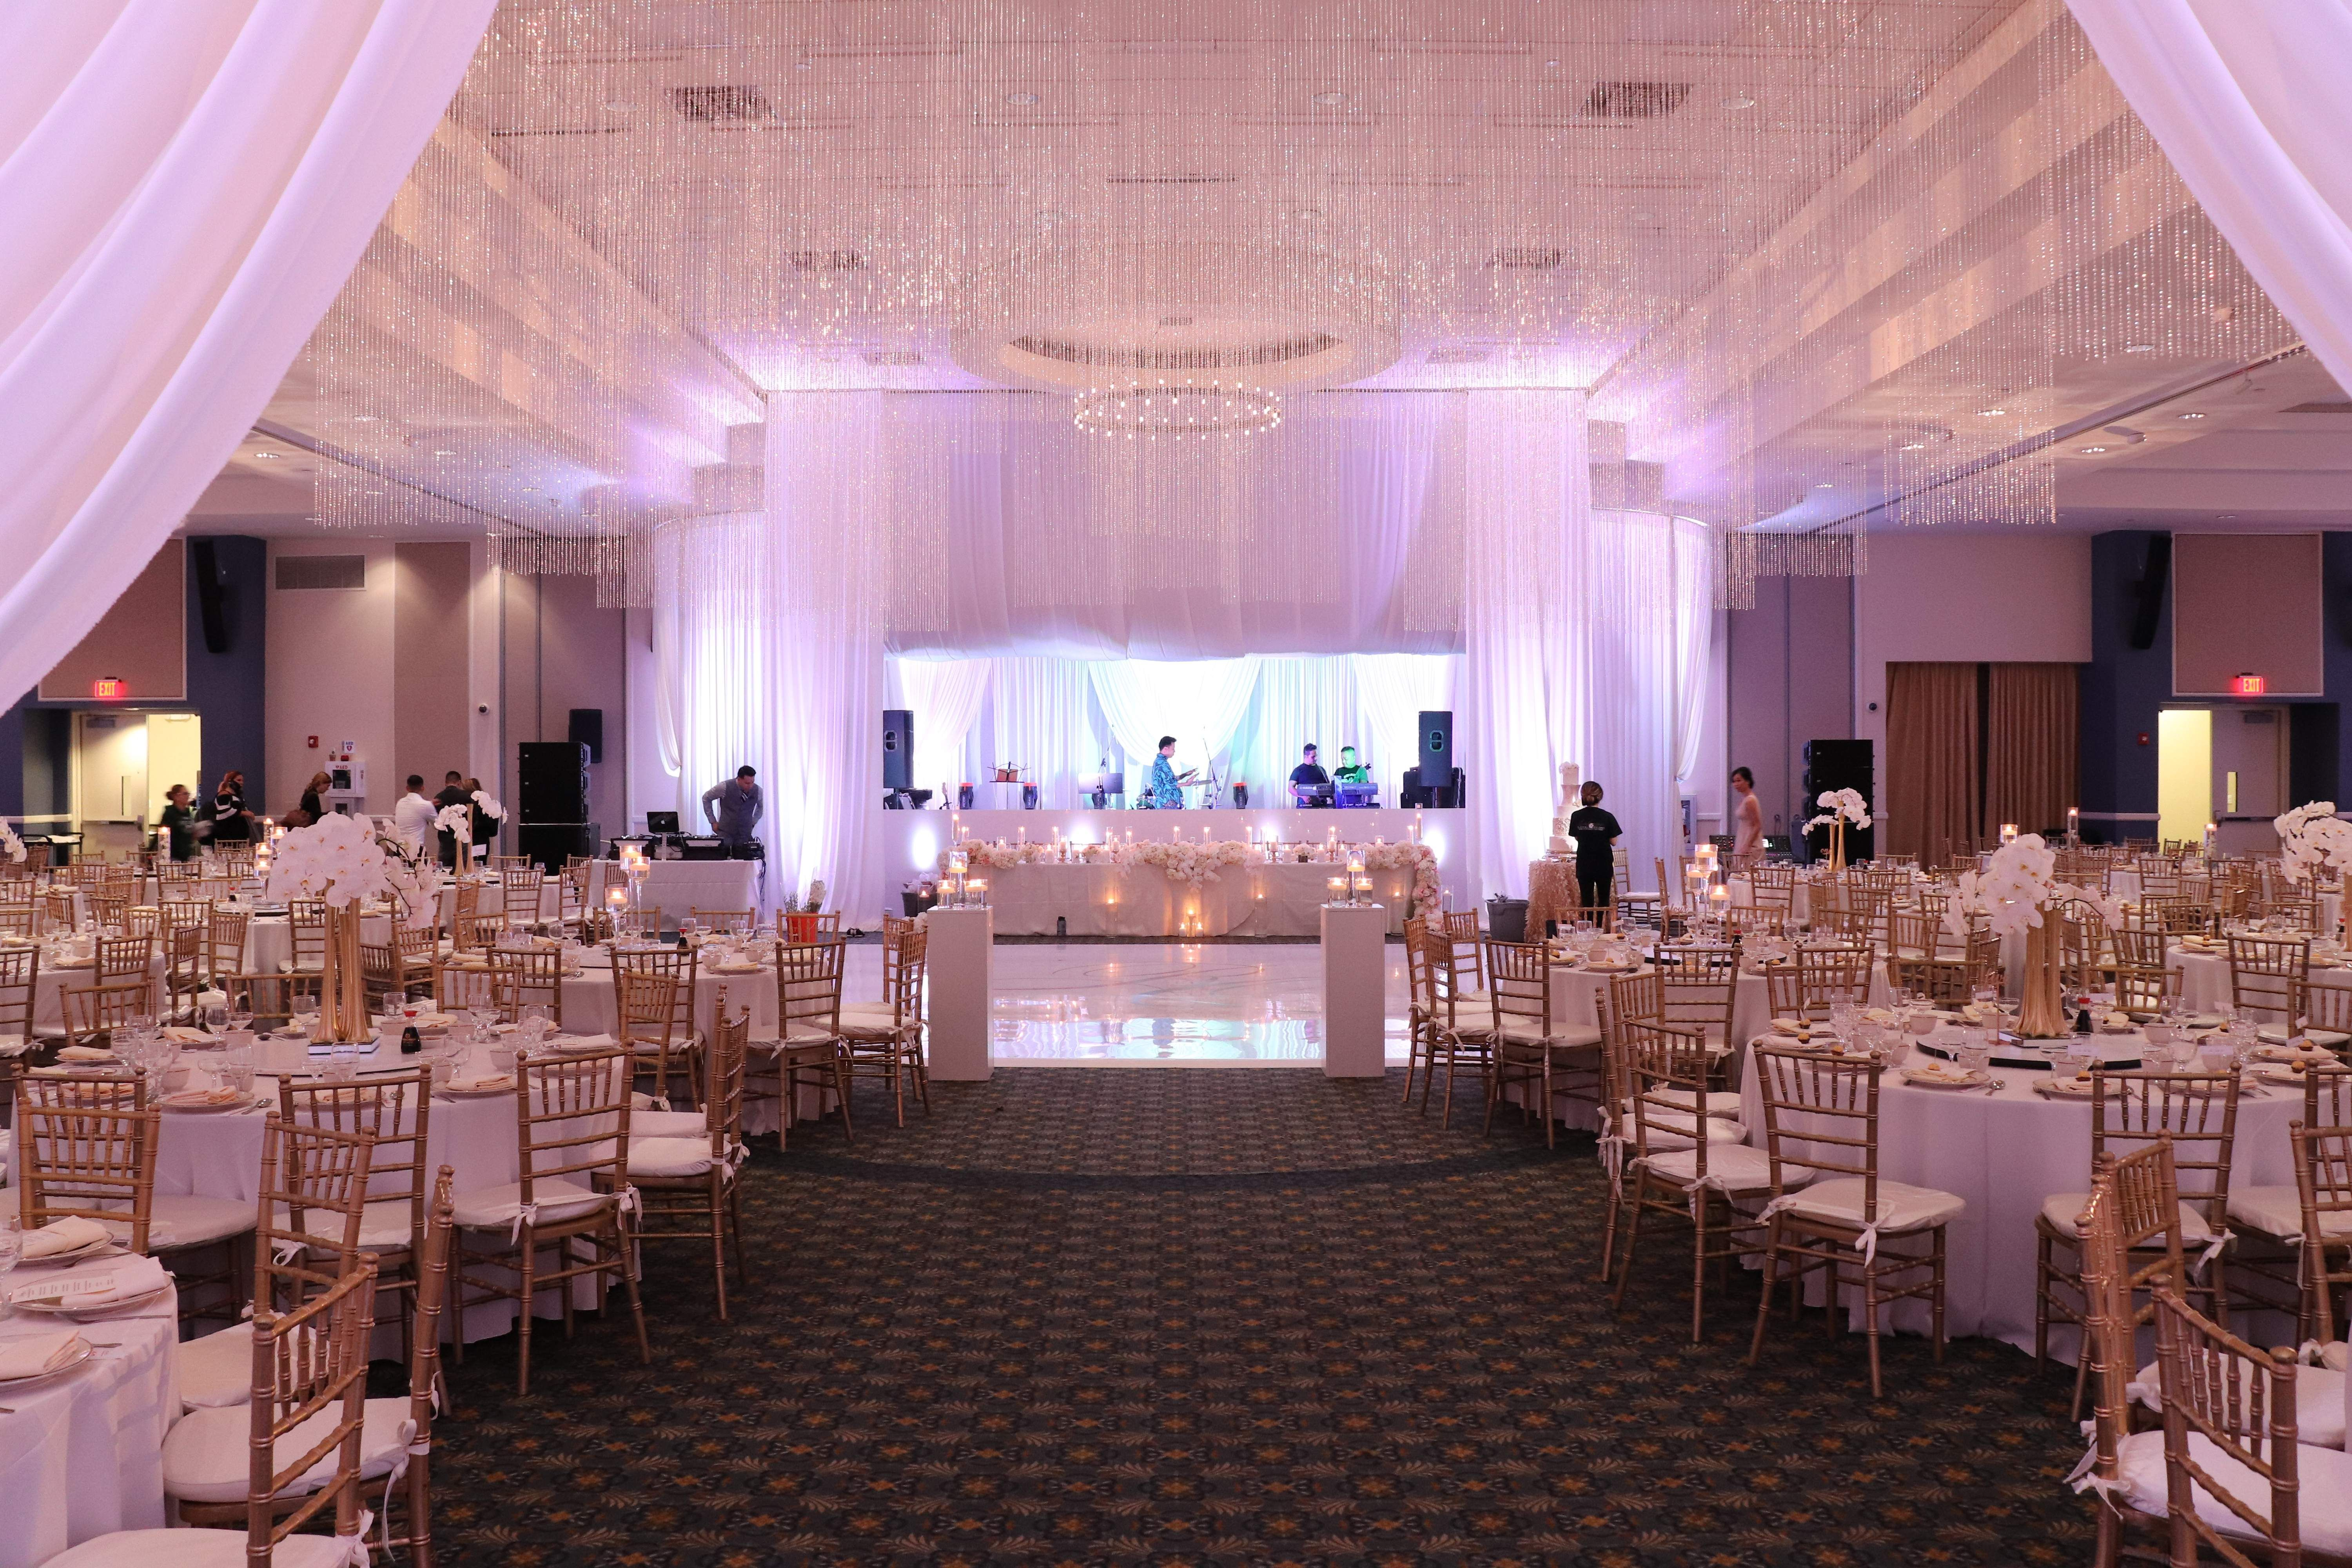 Elegant Crystal Ceiling Decor With Backdrop For The Head Table Event Decor Decorating Services Wedding Decorations